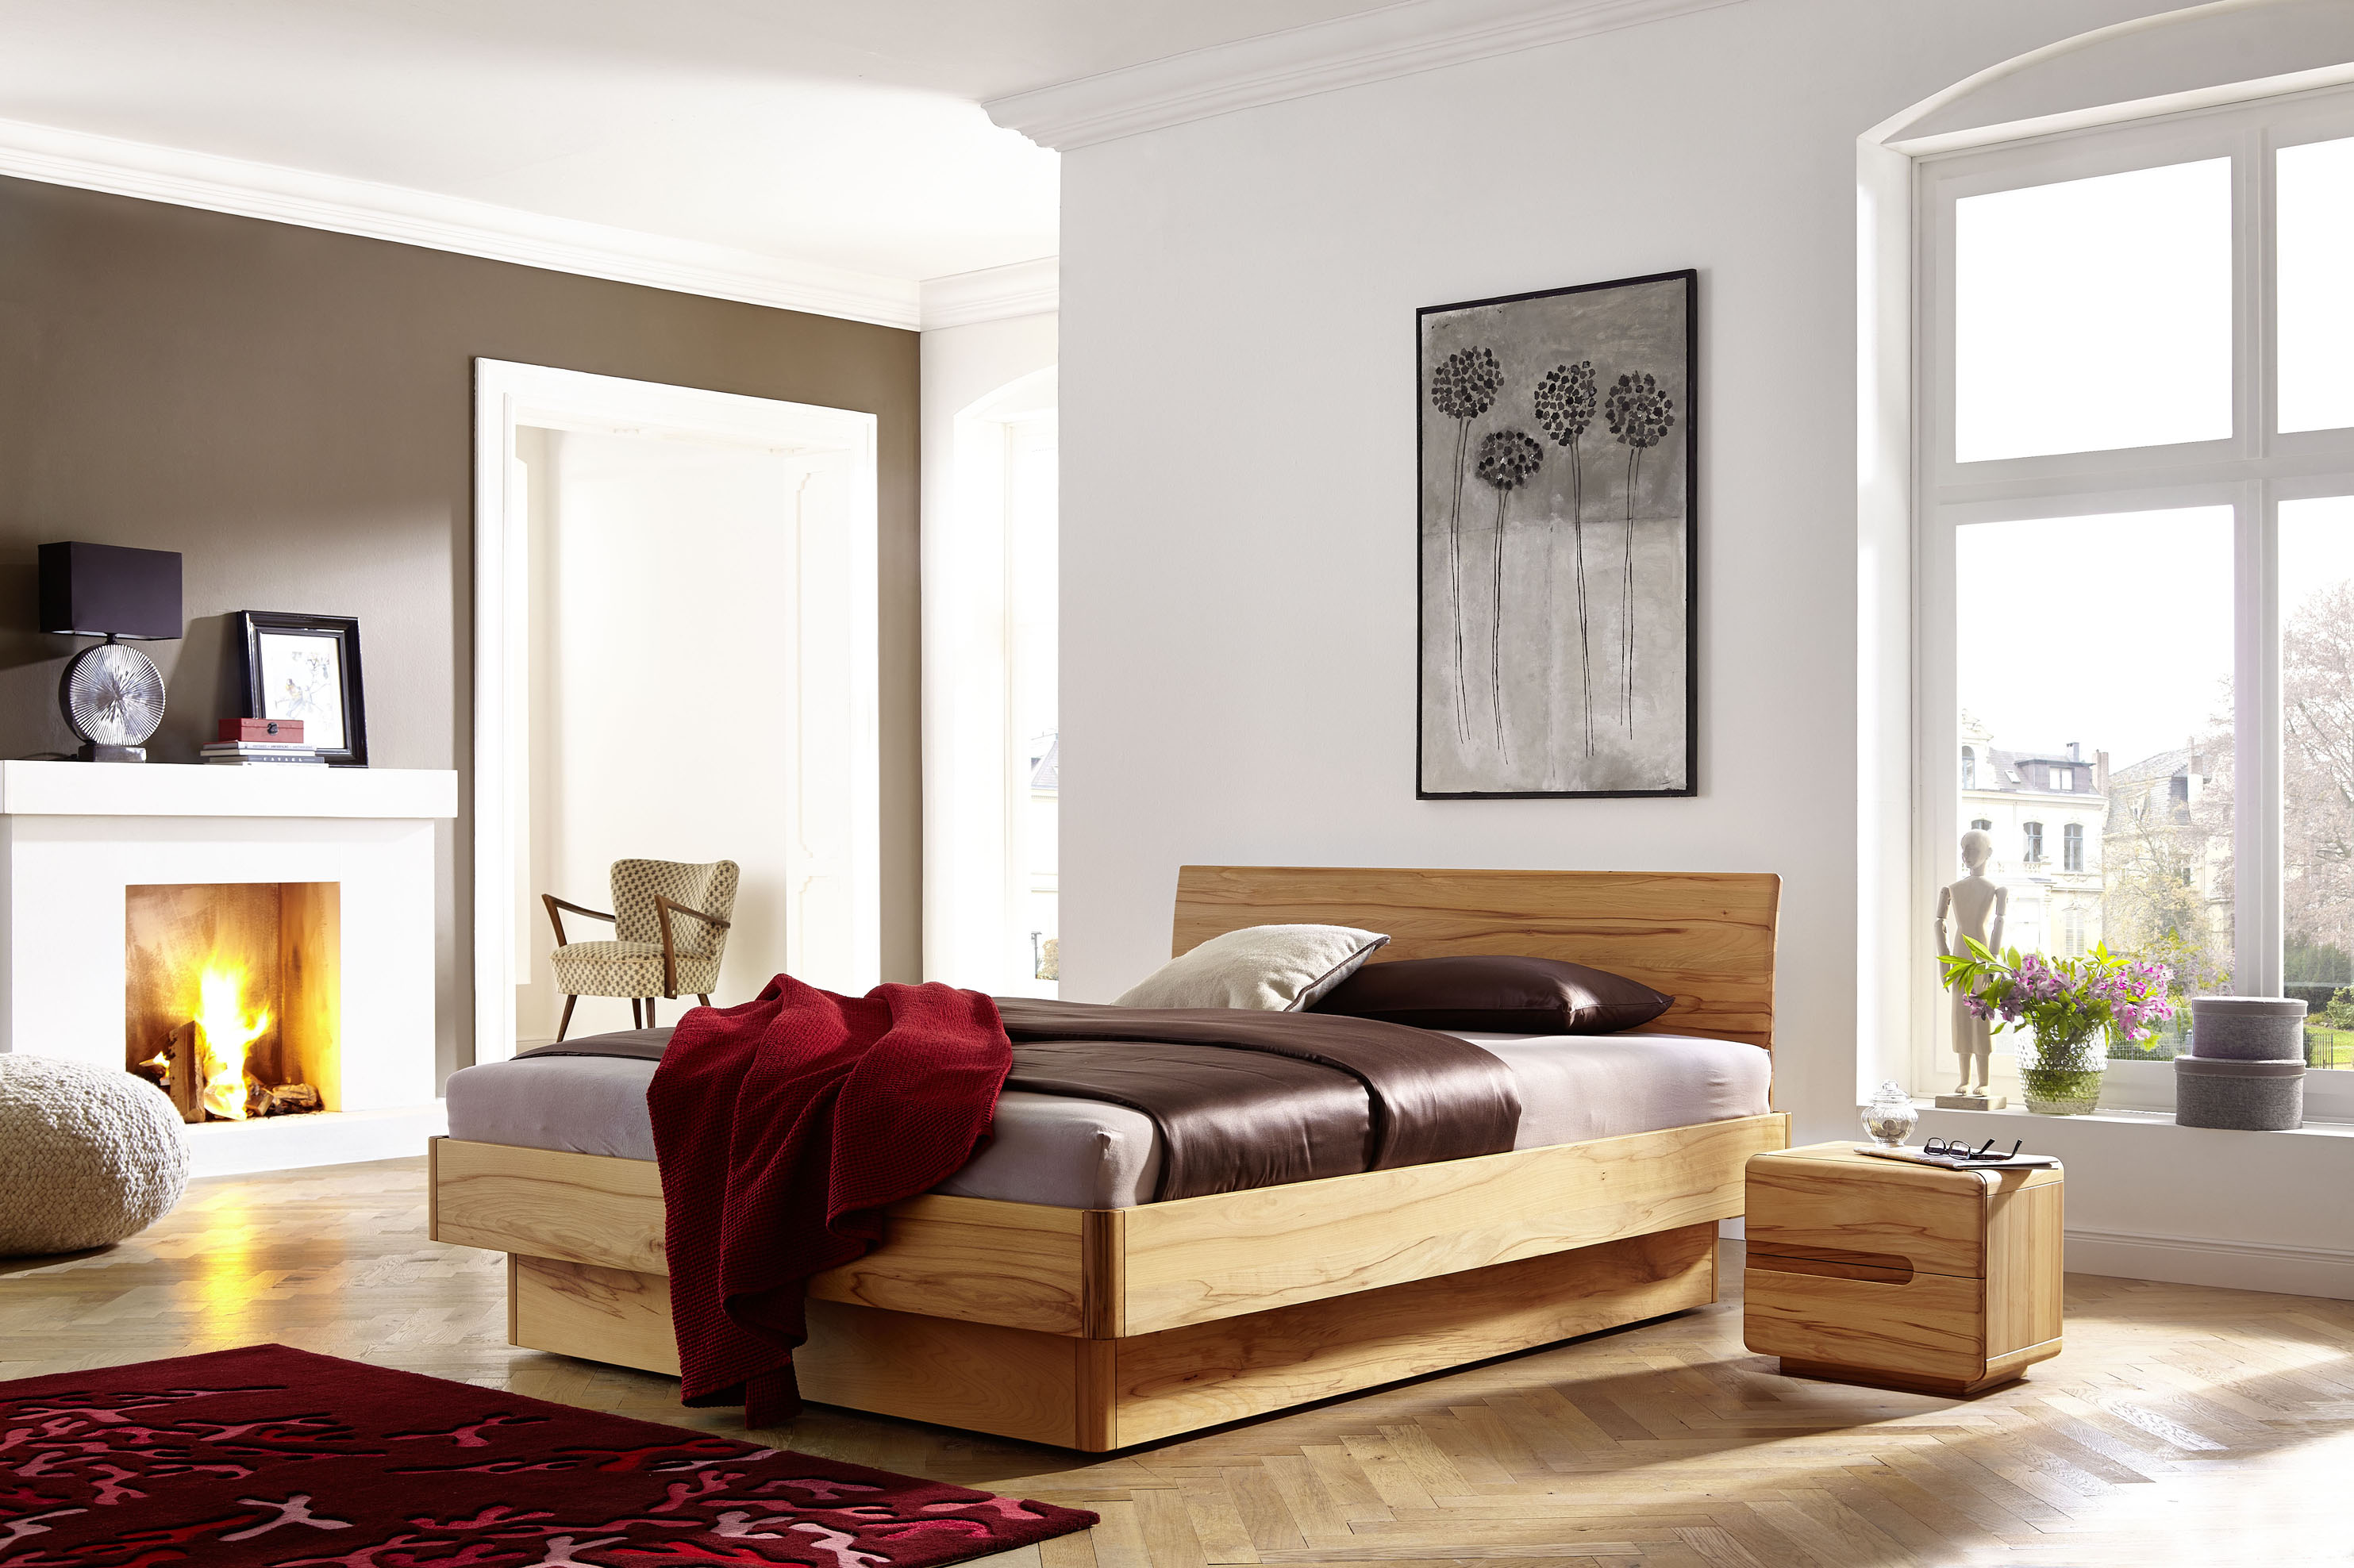 bett mit bettkasten stauraumbett man betten leipzig. Black Bedroom Furniture Sets. Home Design Ideas